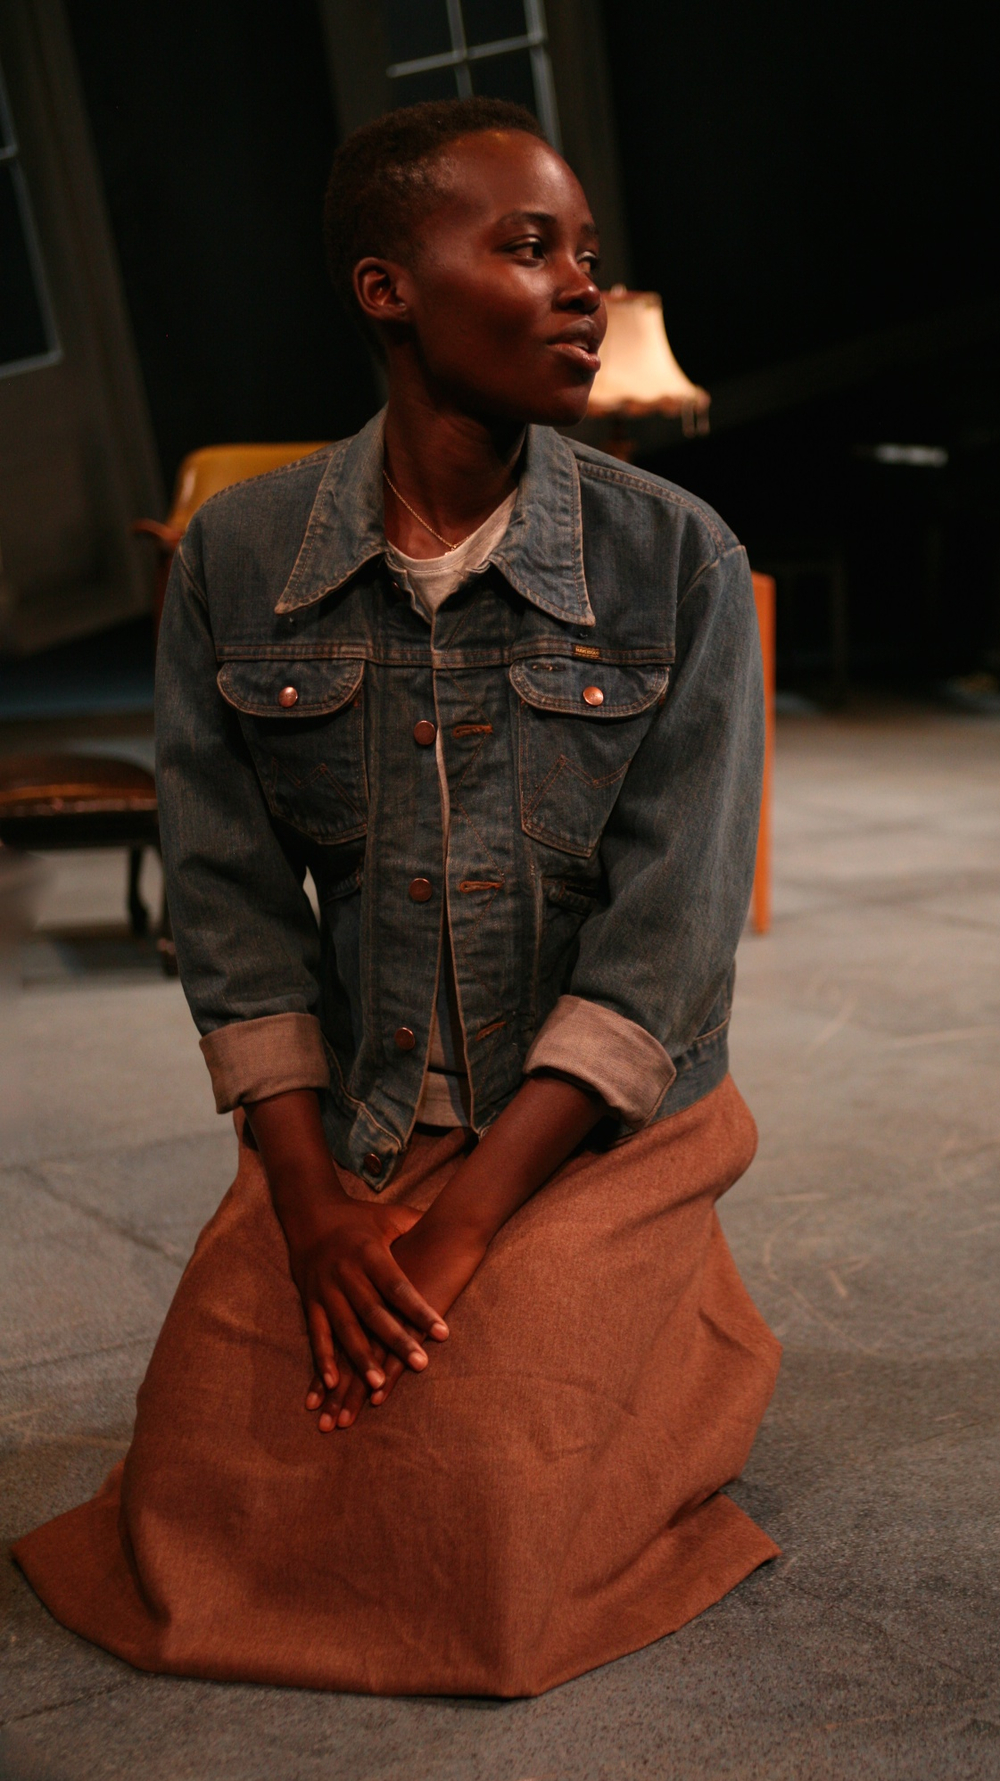 Another image of Lupita Nyong'o performing in YSD's 2010 production of Uncle Vanya.